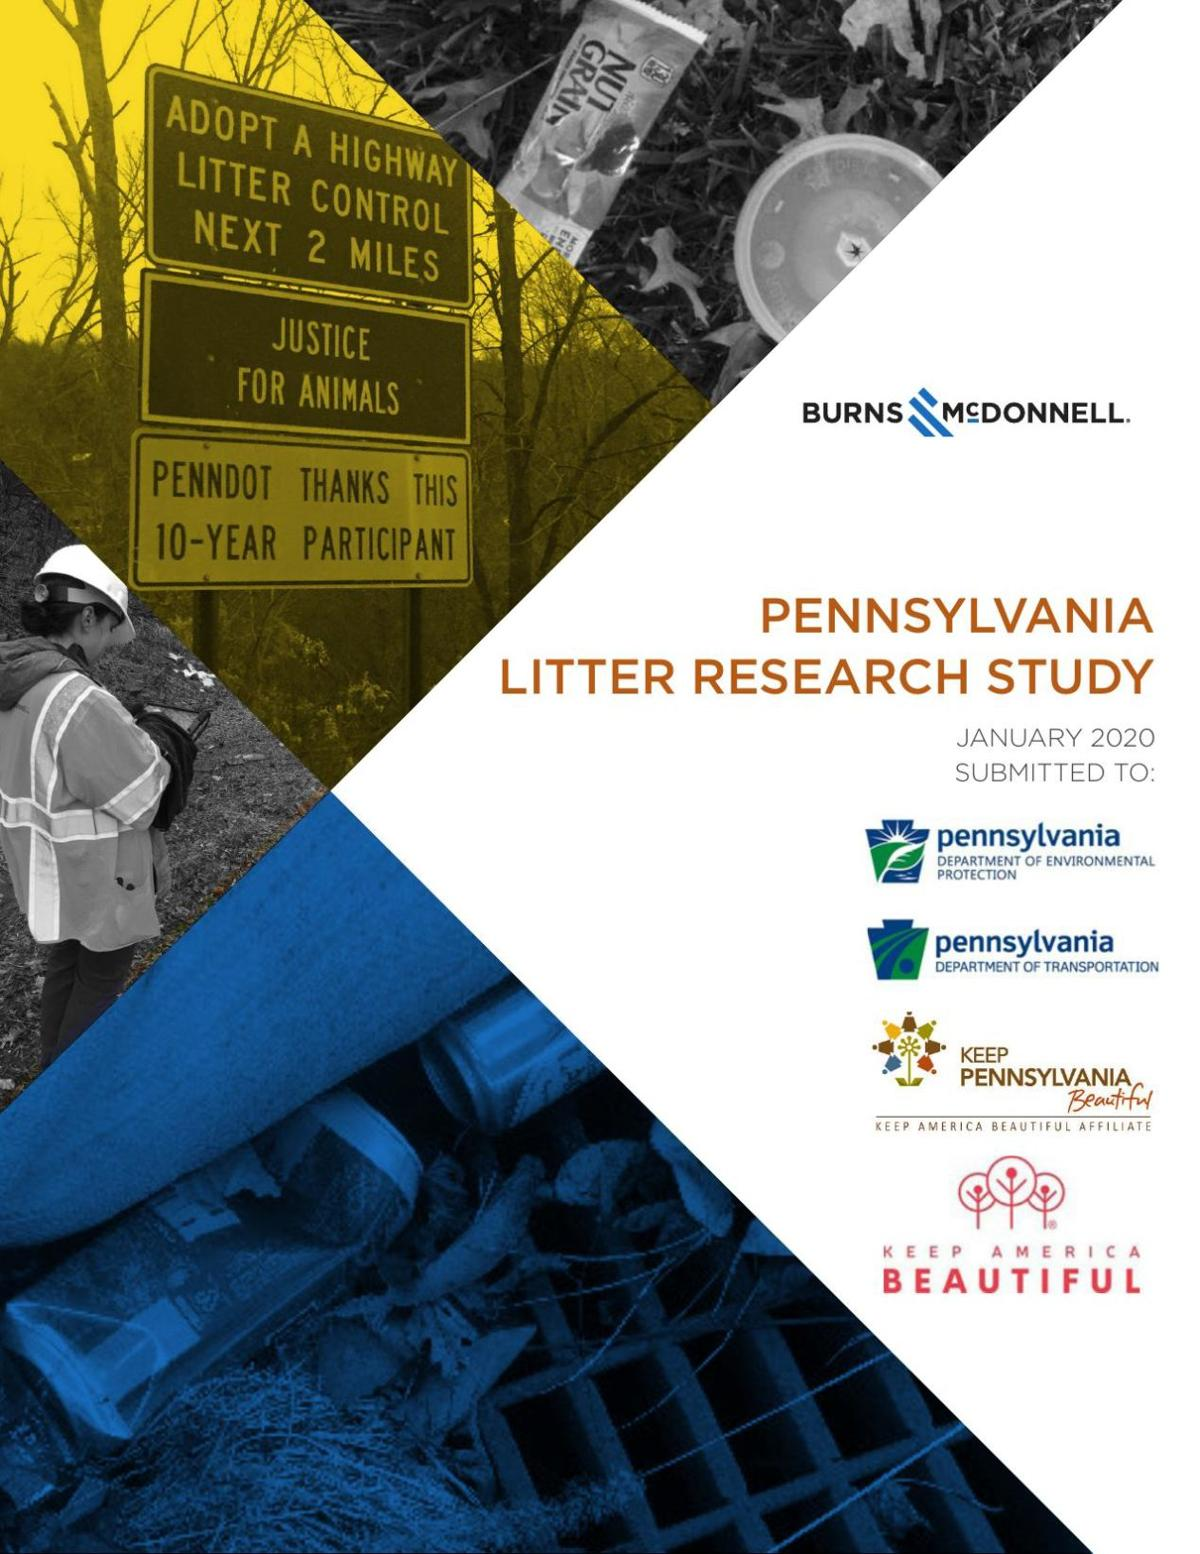 READ: Pennsylvania Litter Research Study